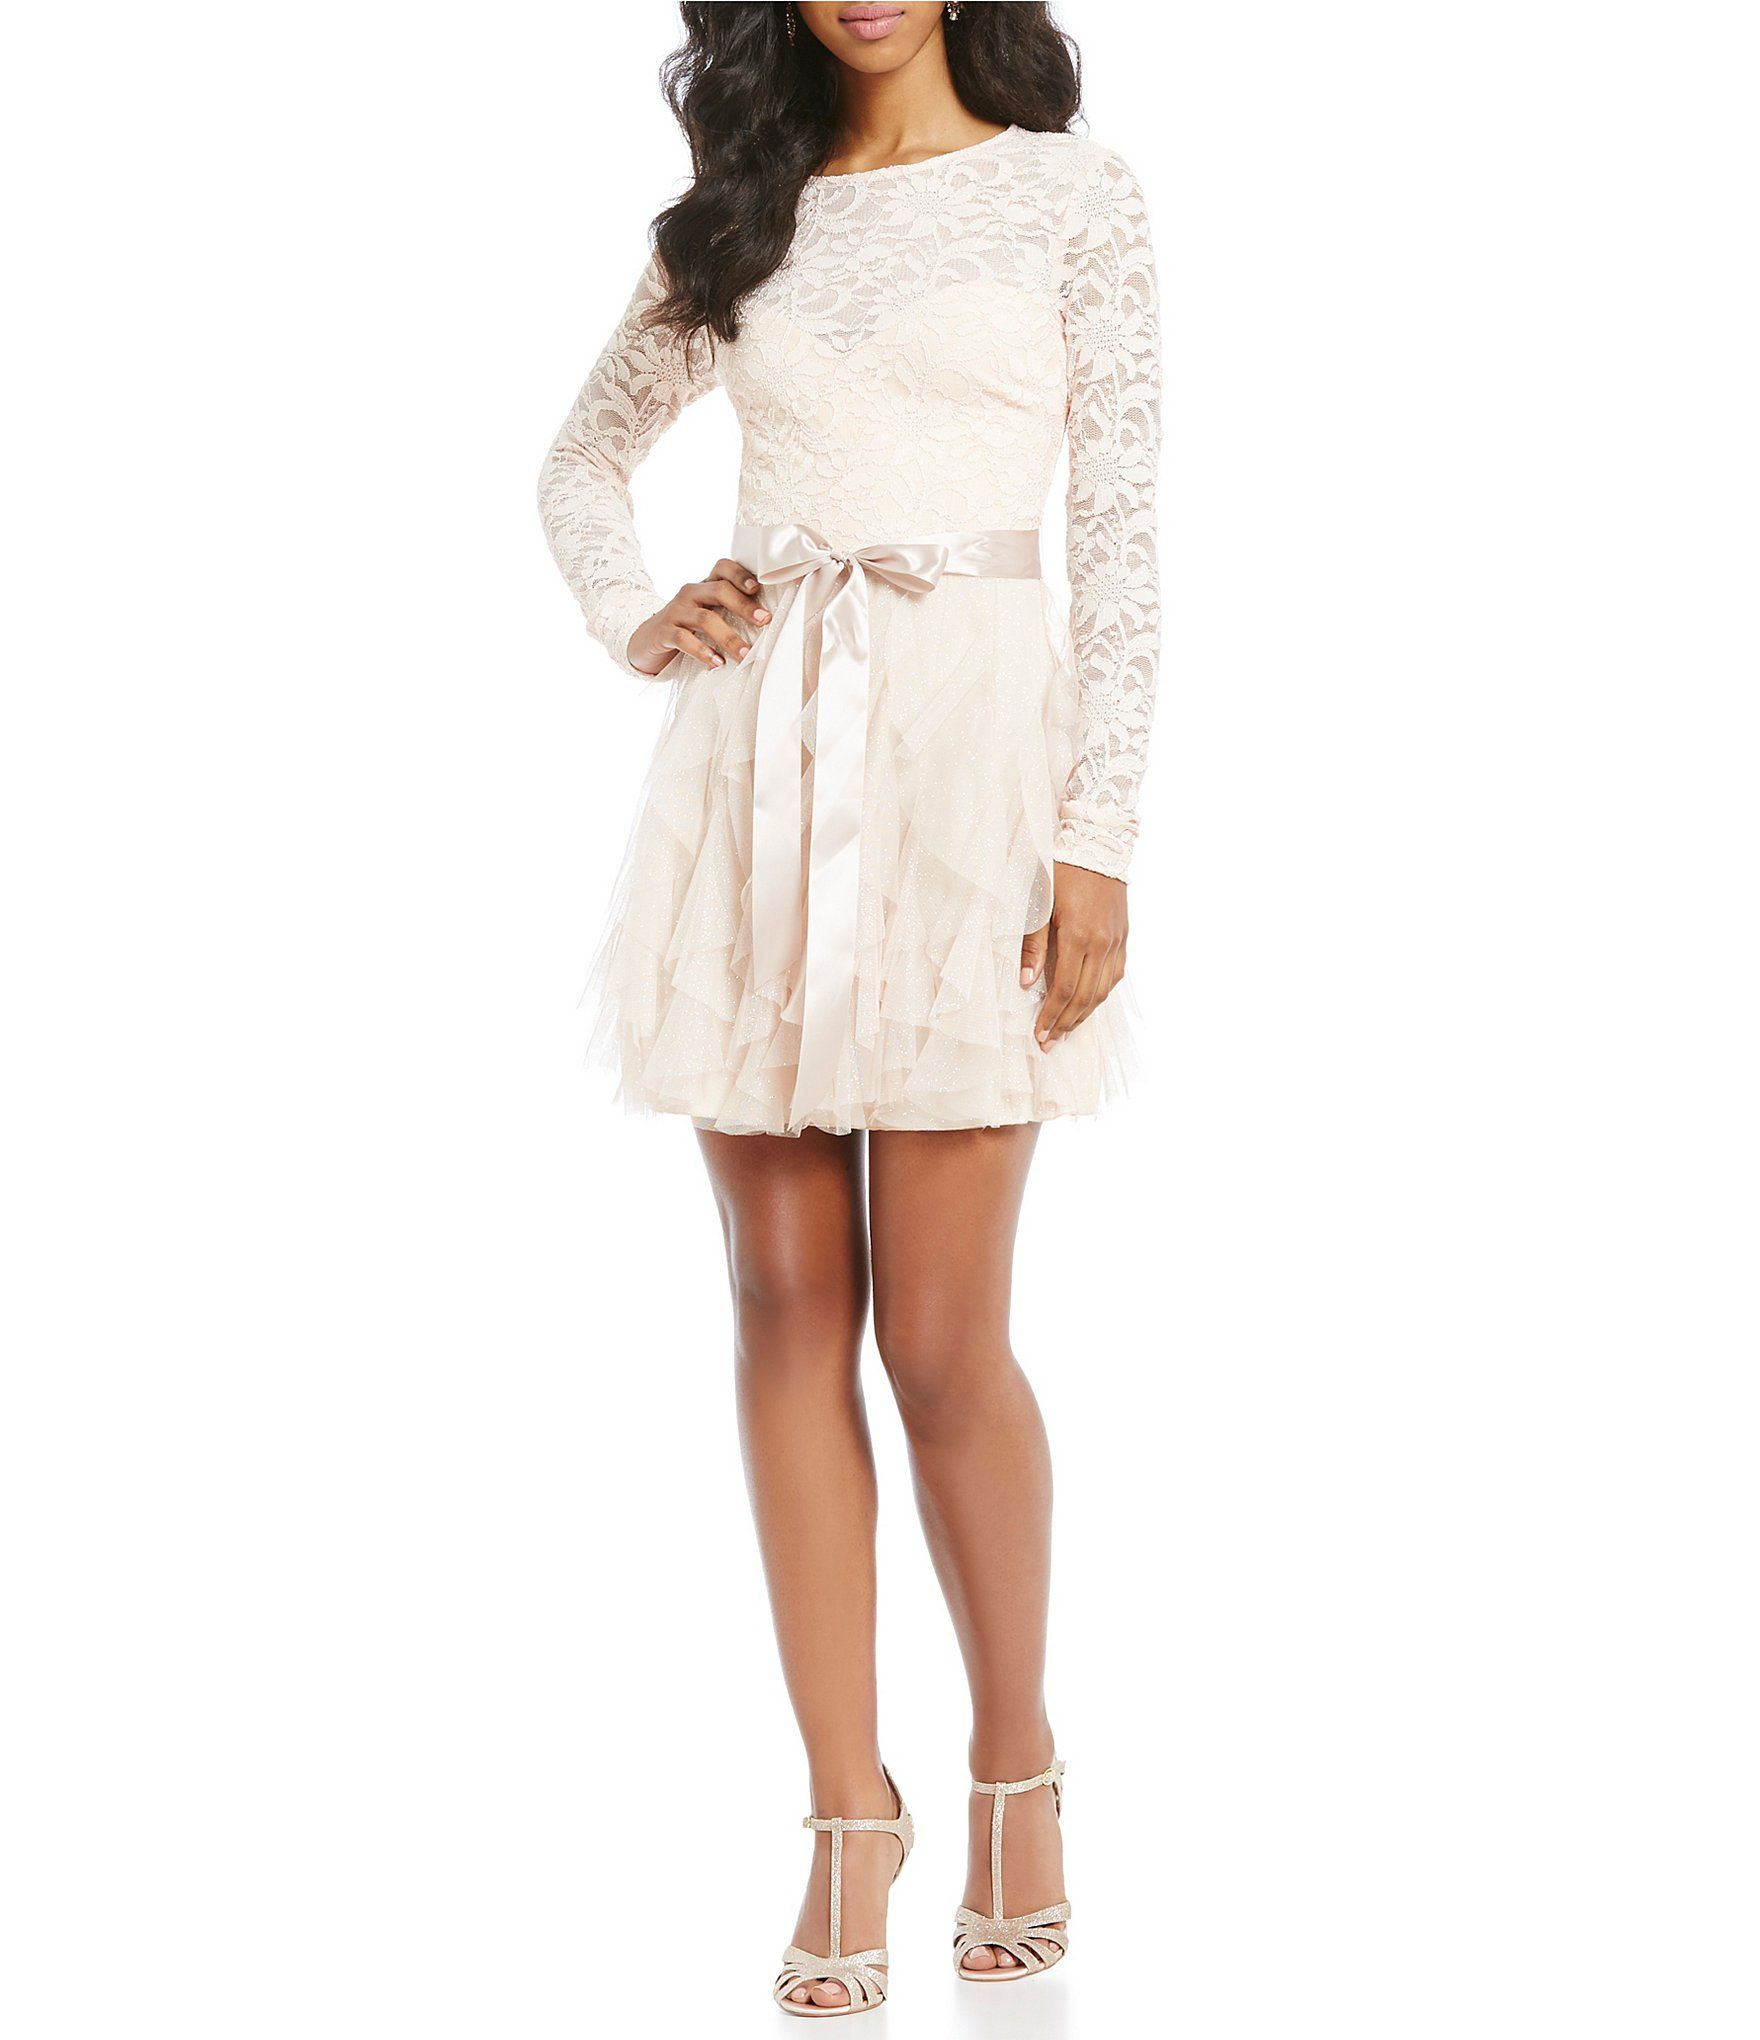 4963dc1927 Shop for Teeze Me Long Sleeve Lace Bodice Corkscrew Dress at Dillards.com.  Visit Dillards.com to find clothing